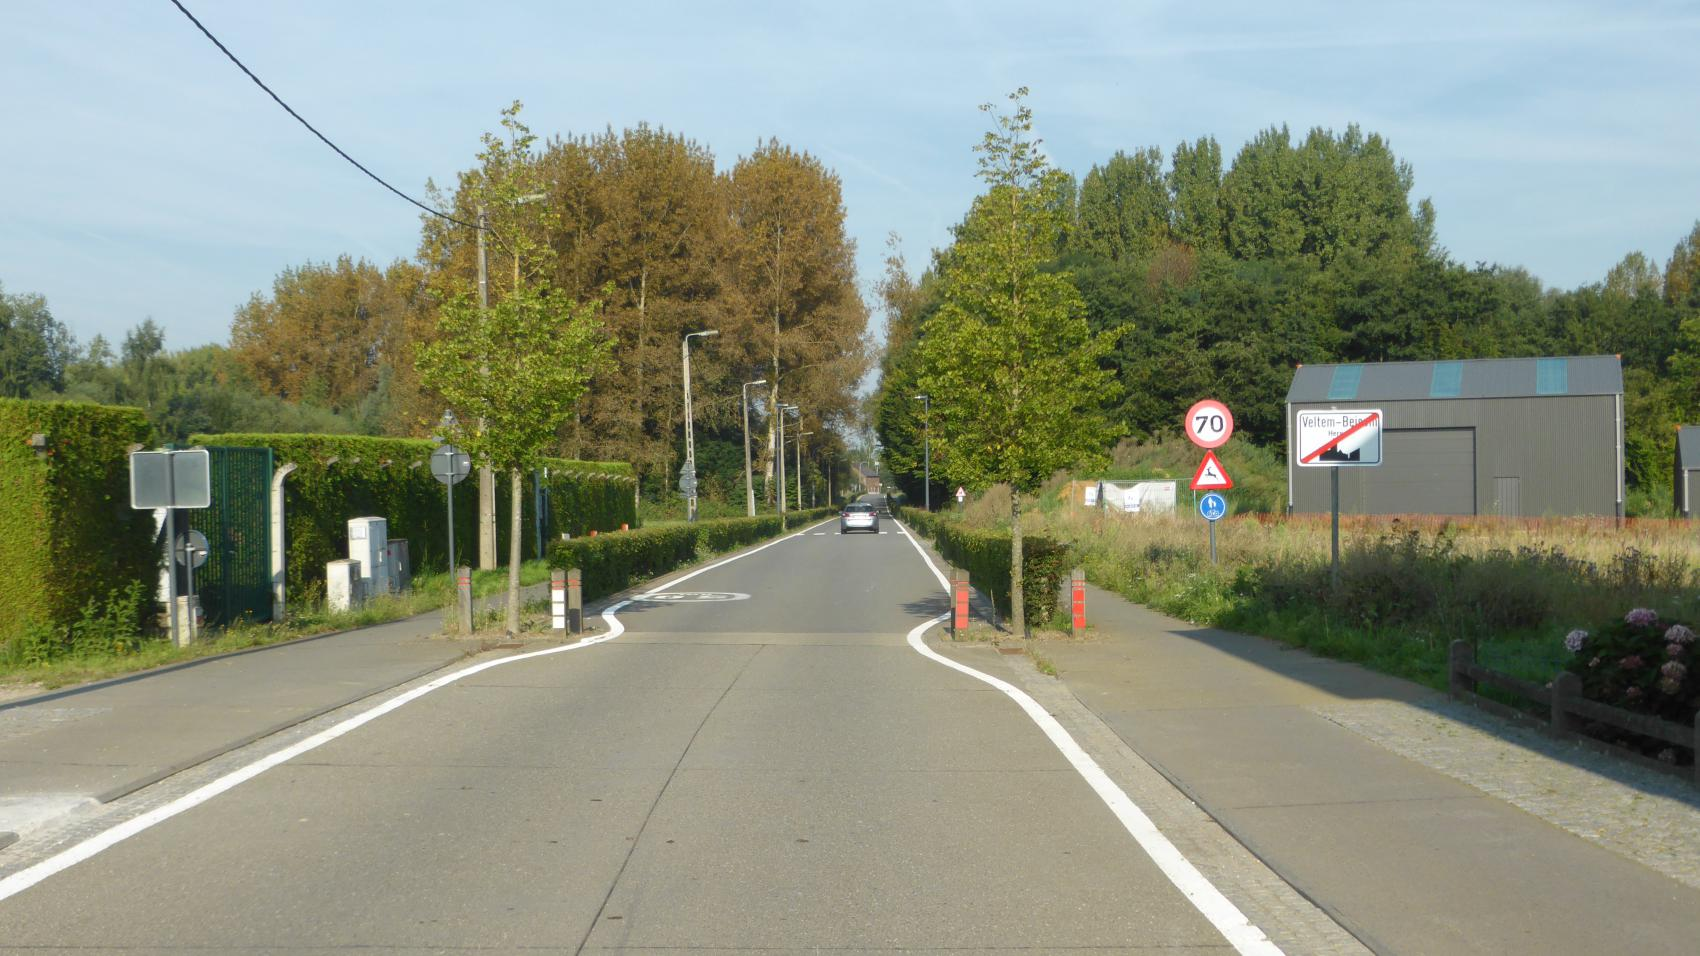 As the road leaves the village, speed limit is raised to 70 km/h and higher degree of separation between cyclists and motorised vehicles is justified – therefore the hedges between the cycle paths and the carriageway.